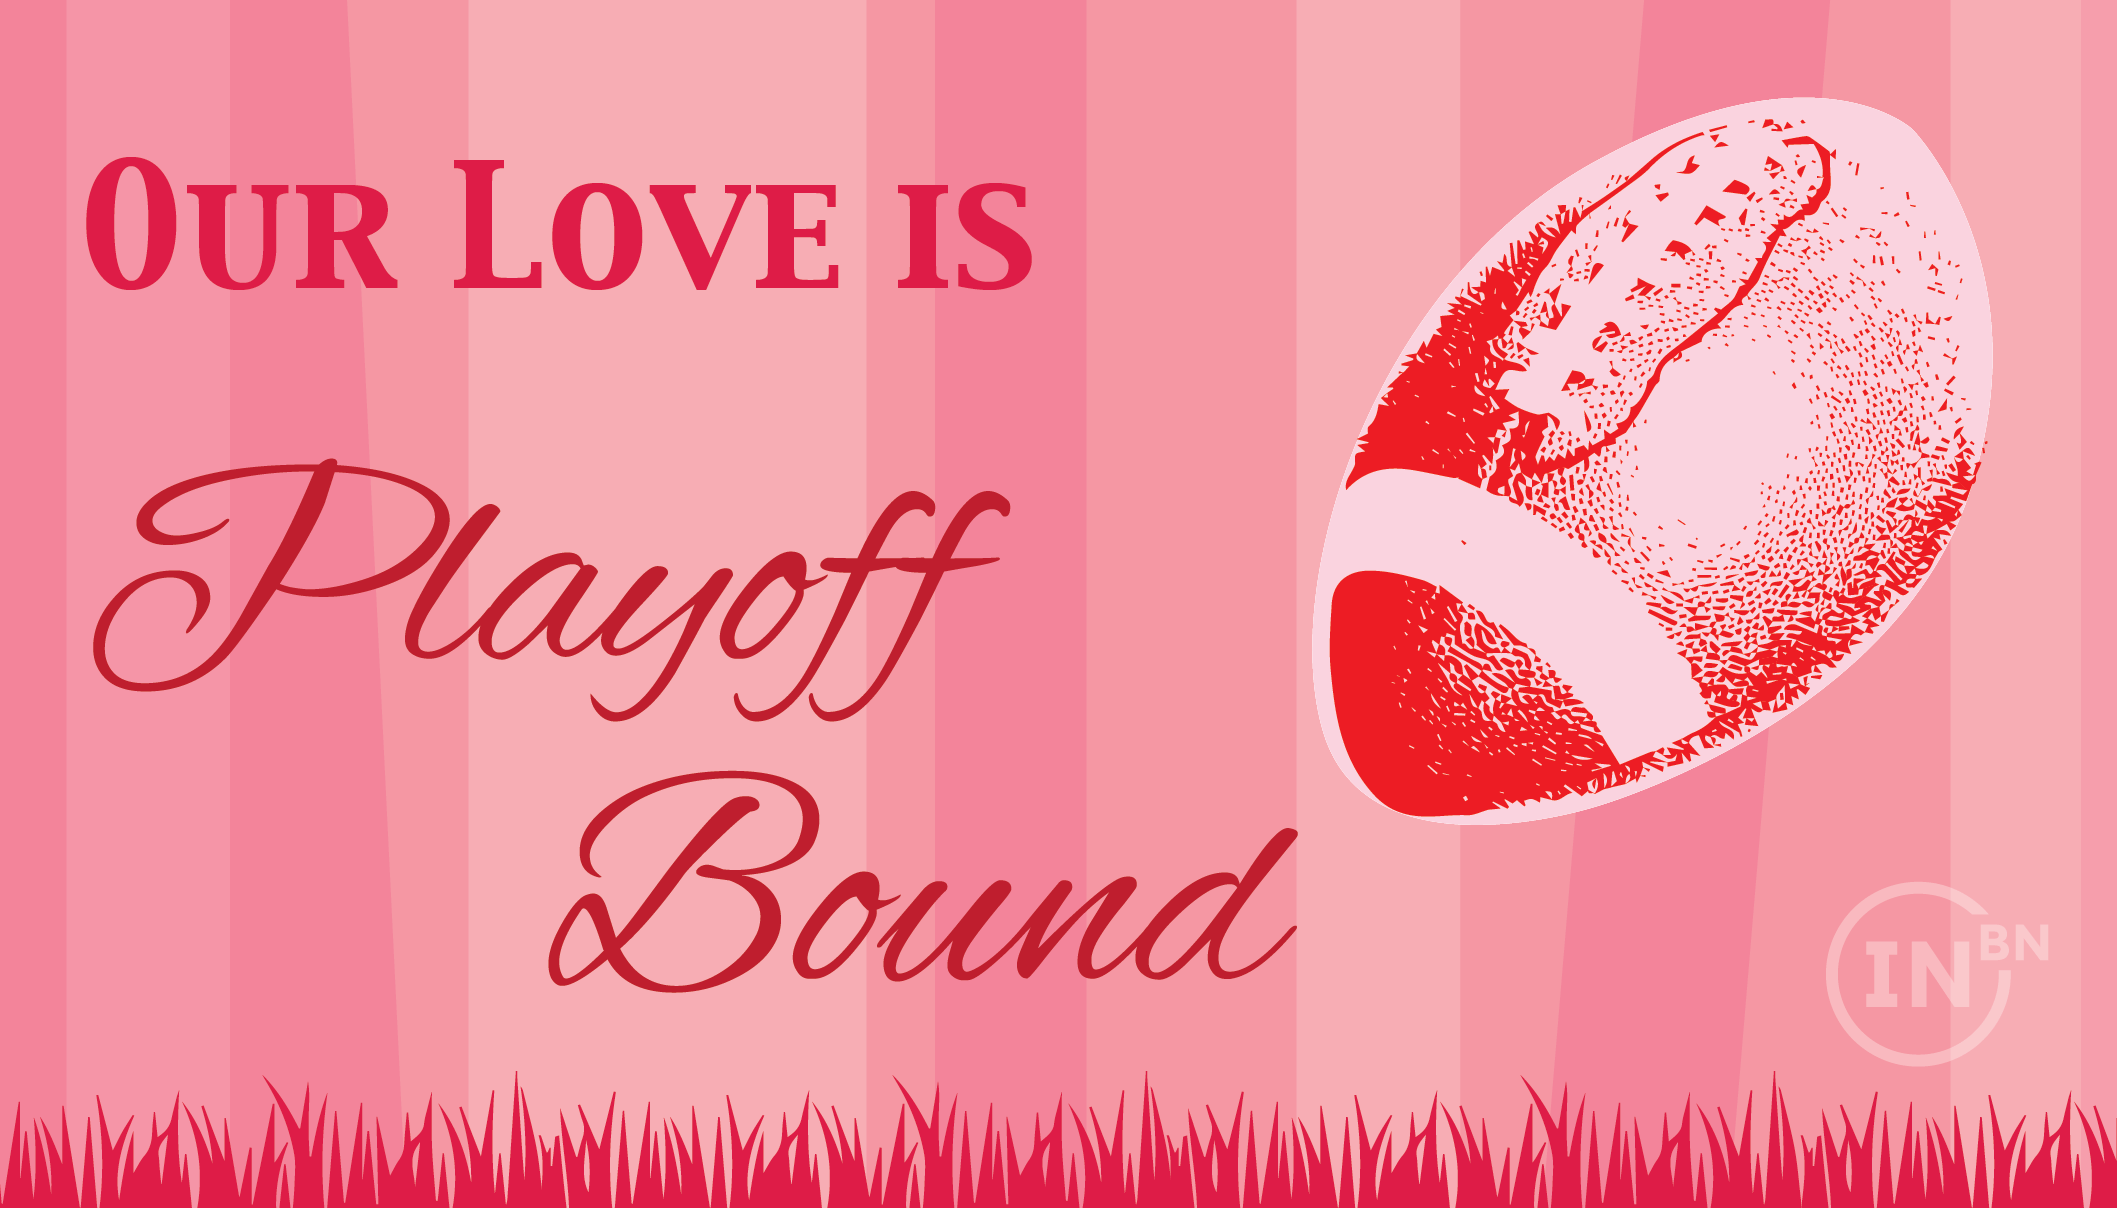 Our love is playoff-bound